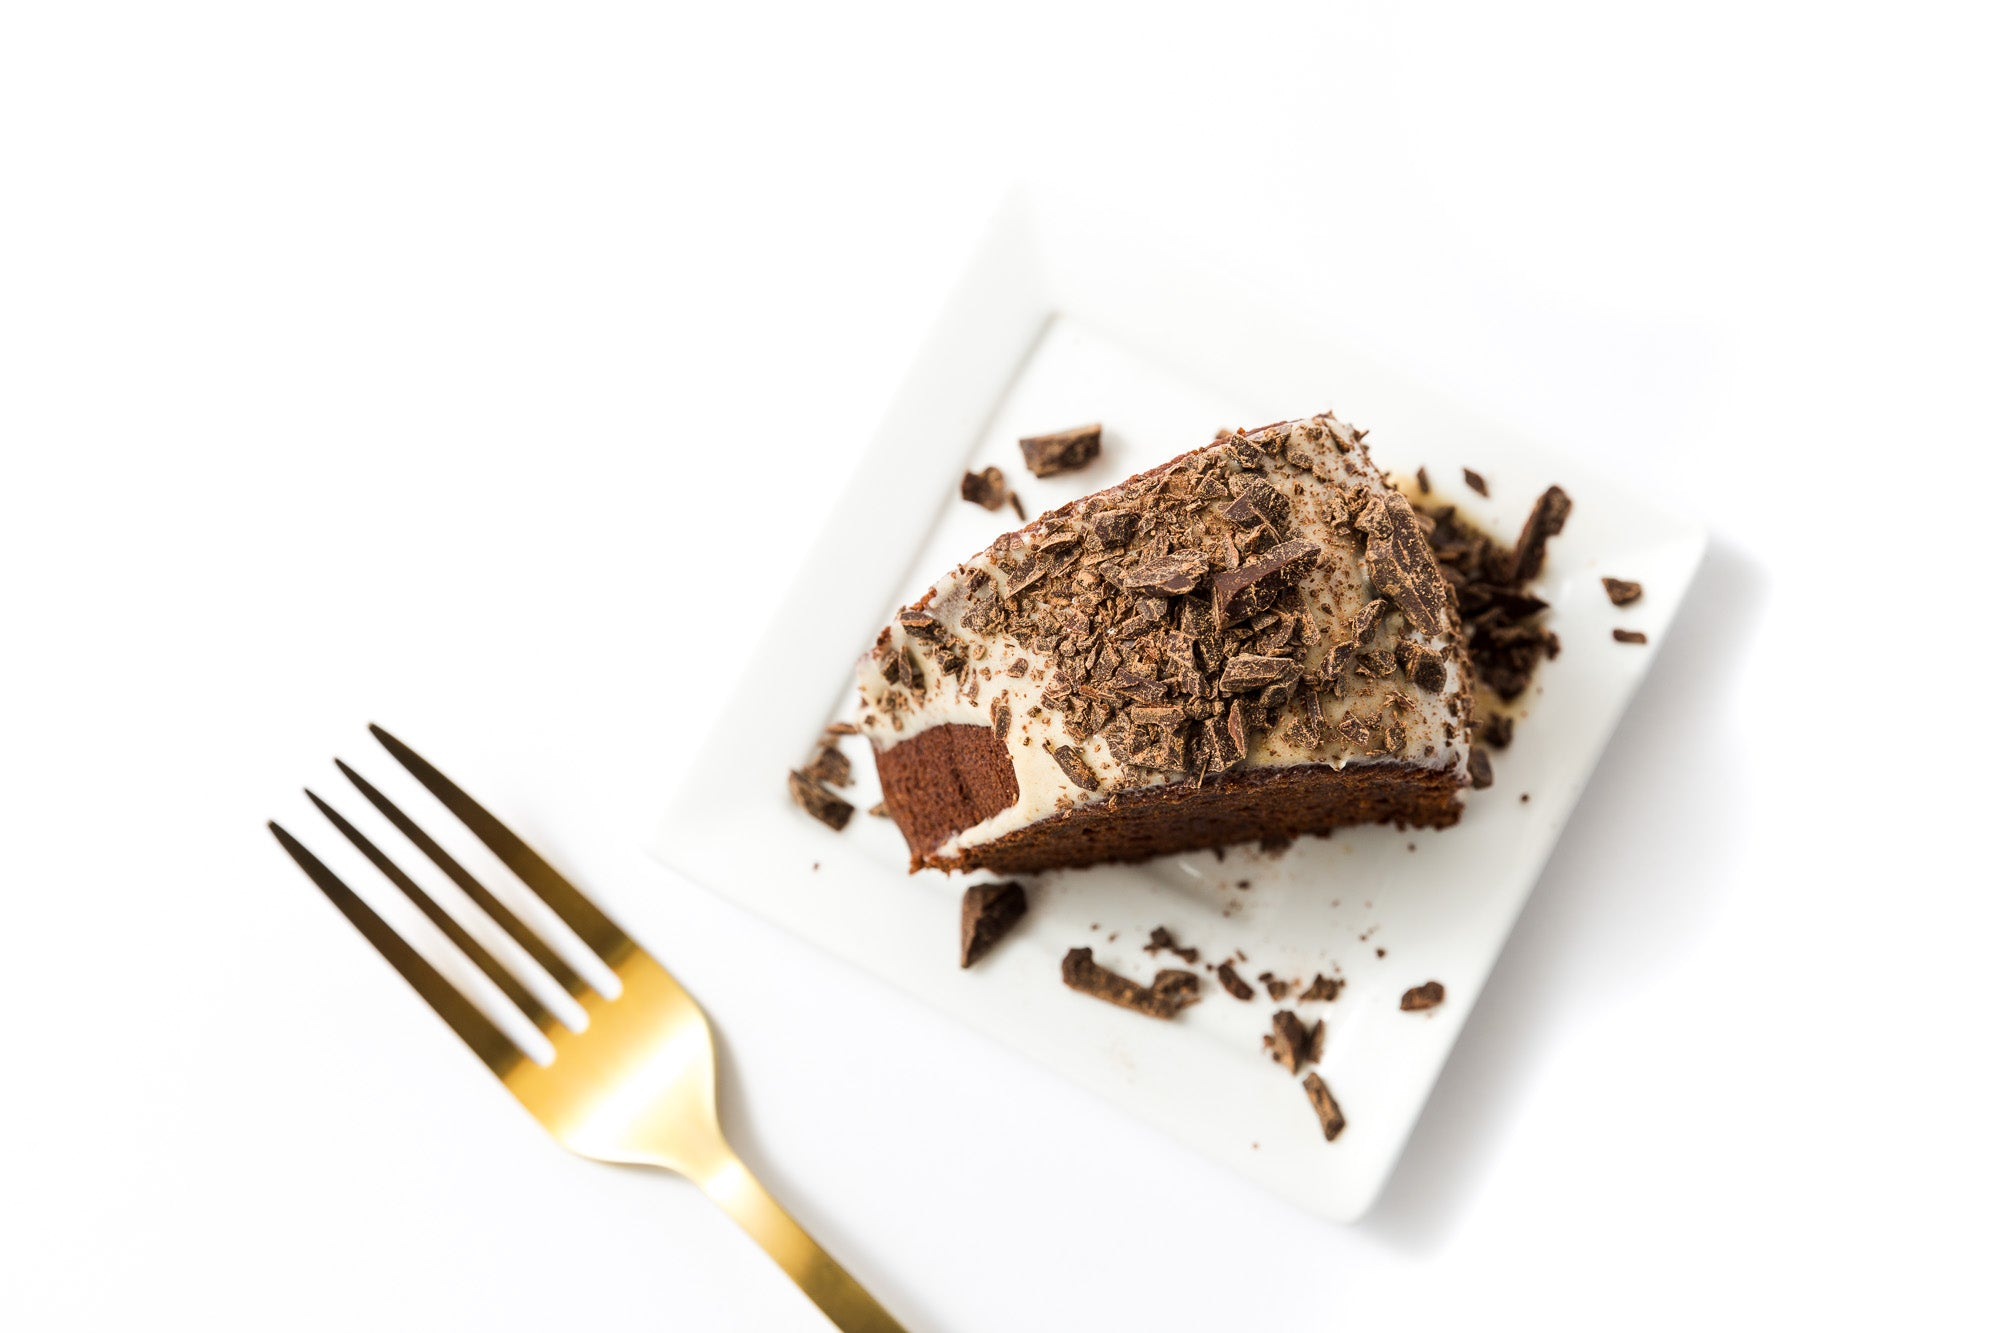 A slice of Miss Jones Baking Co Chocolate Almond Butter Bundt Cake on a plate next to a gold fork